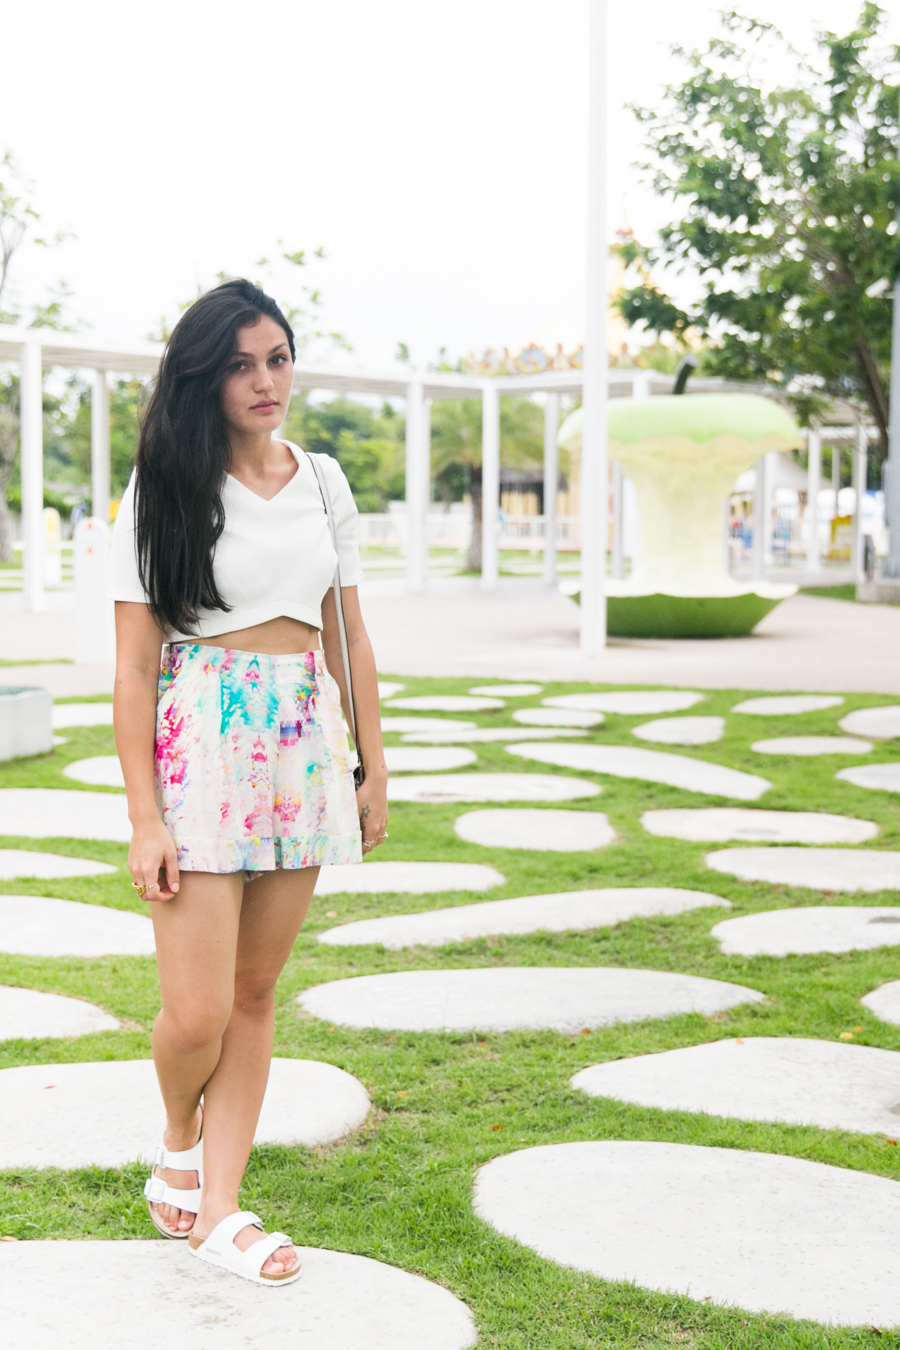 แฟชั่นบล็อกเกอร์ ไทย Thailand fashion blogger. Asos scuba crop top in white. How to wear colour for summer.